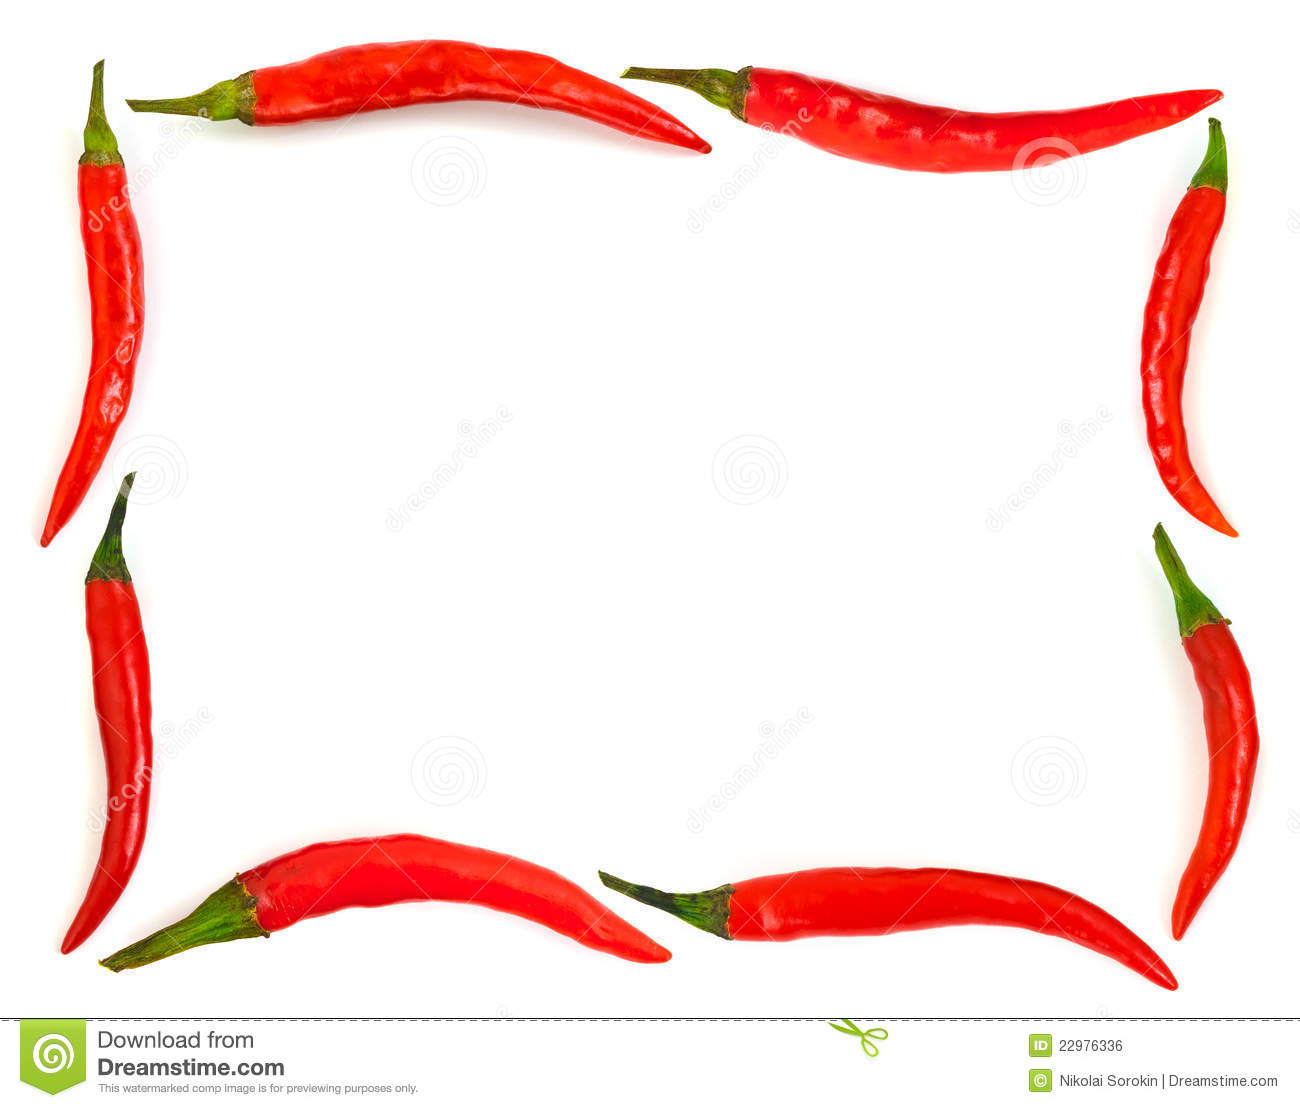 Chili Pepper Border Free Download Clip Art.